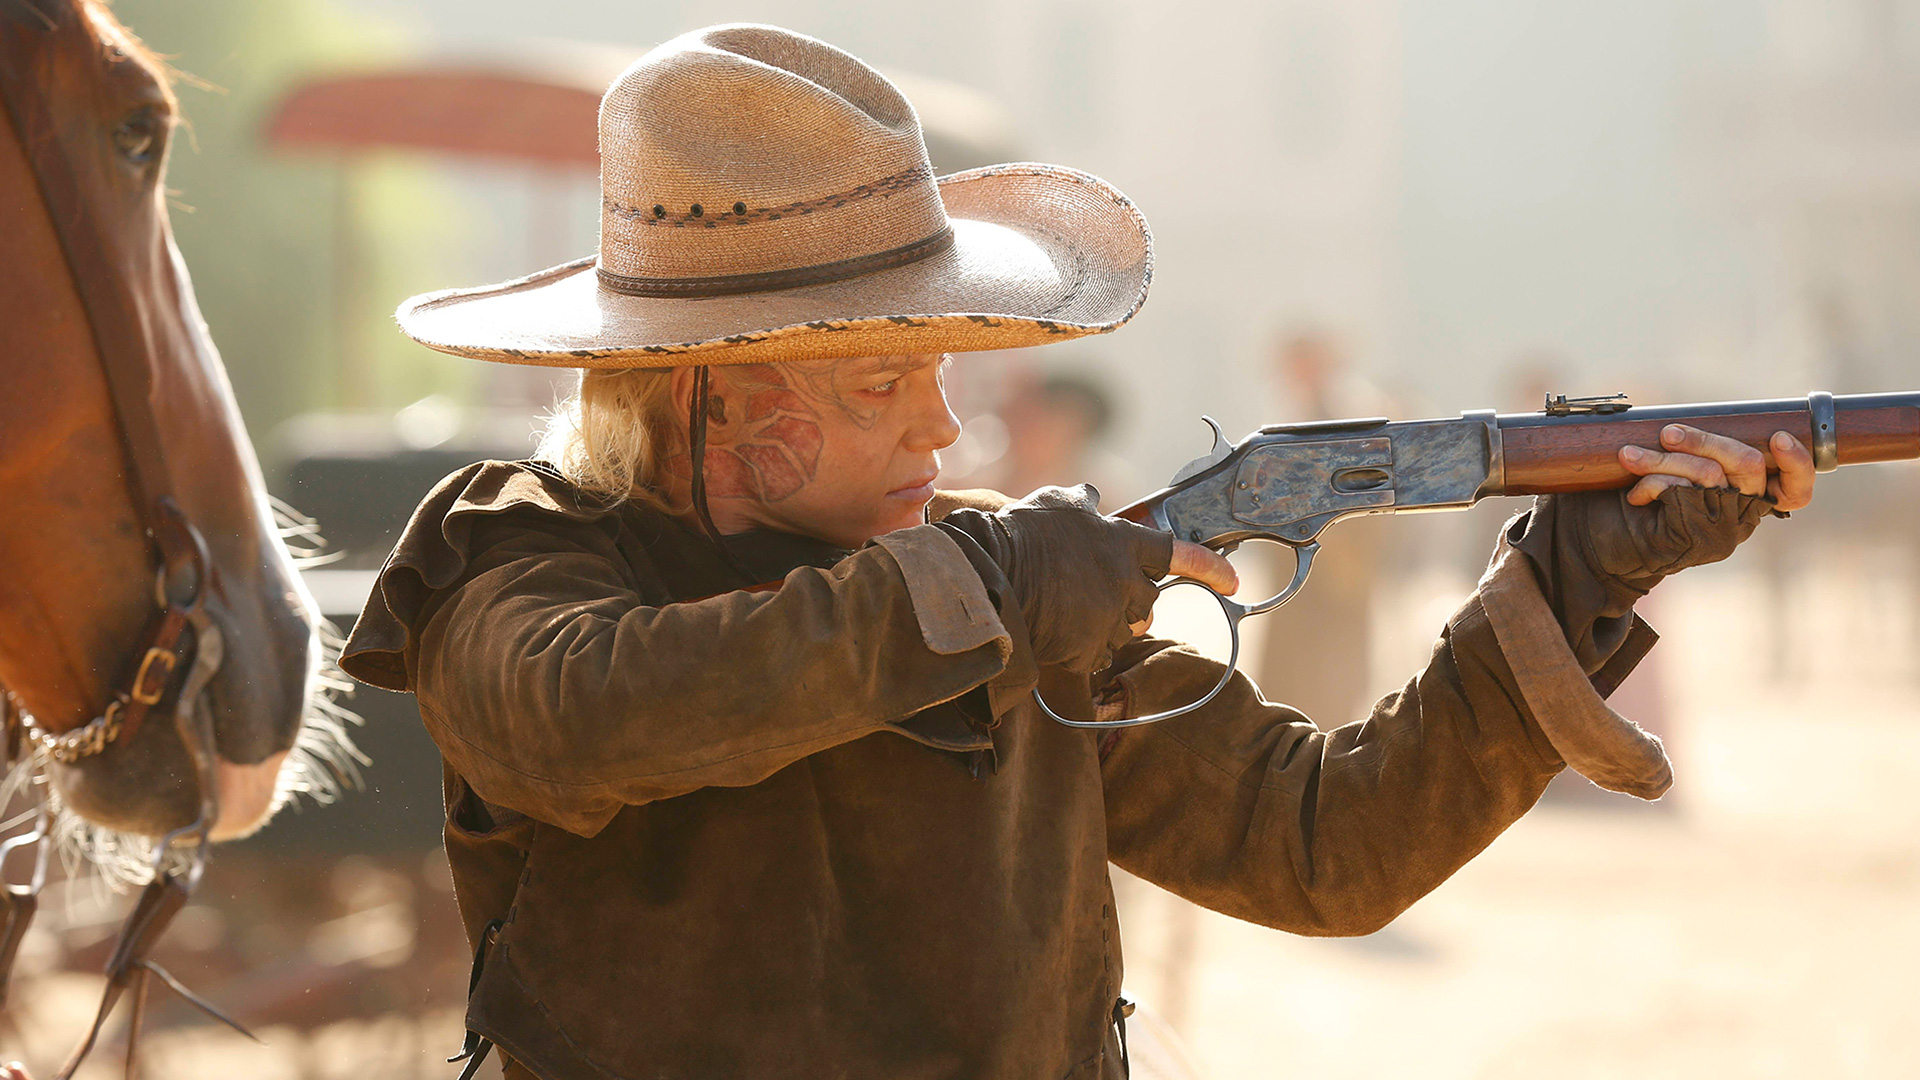 HBO Releases New 'Westworld' Trailer